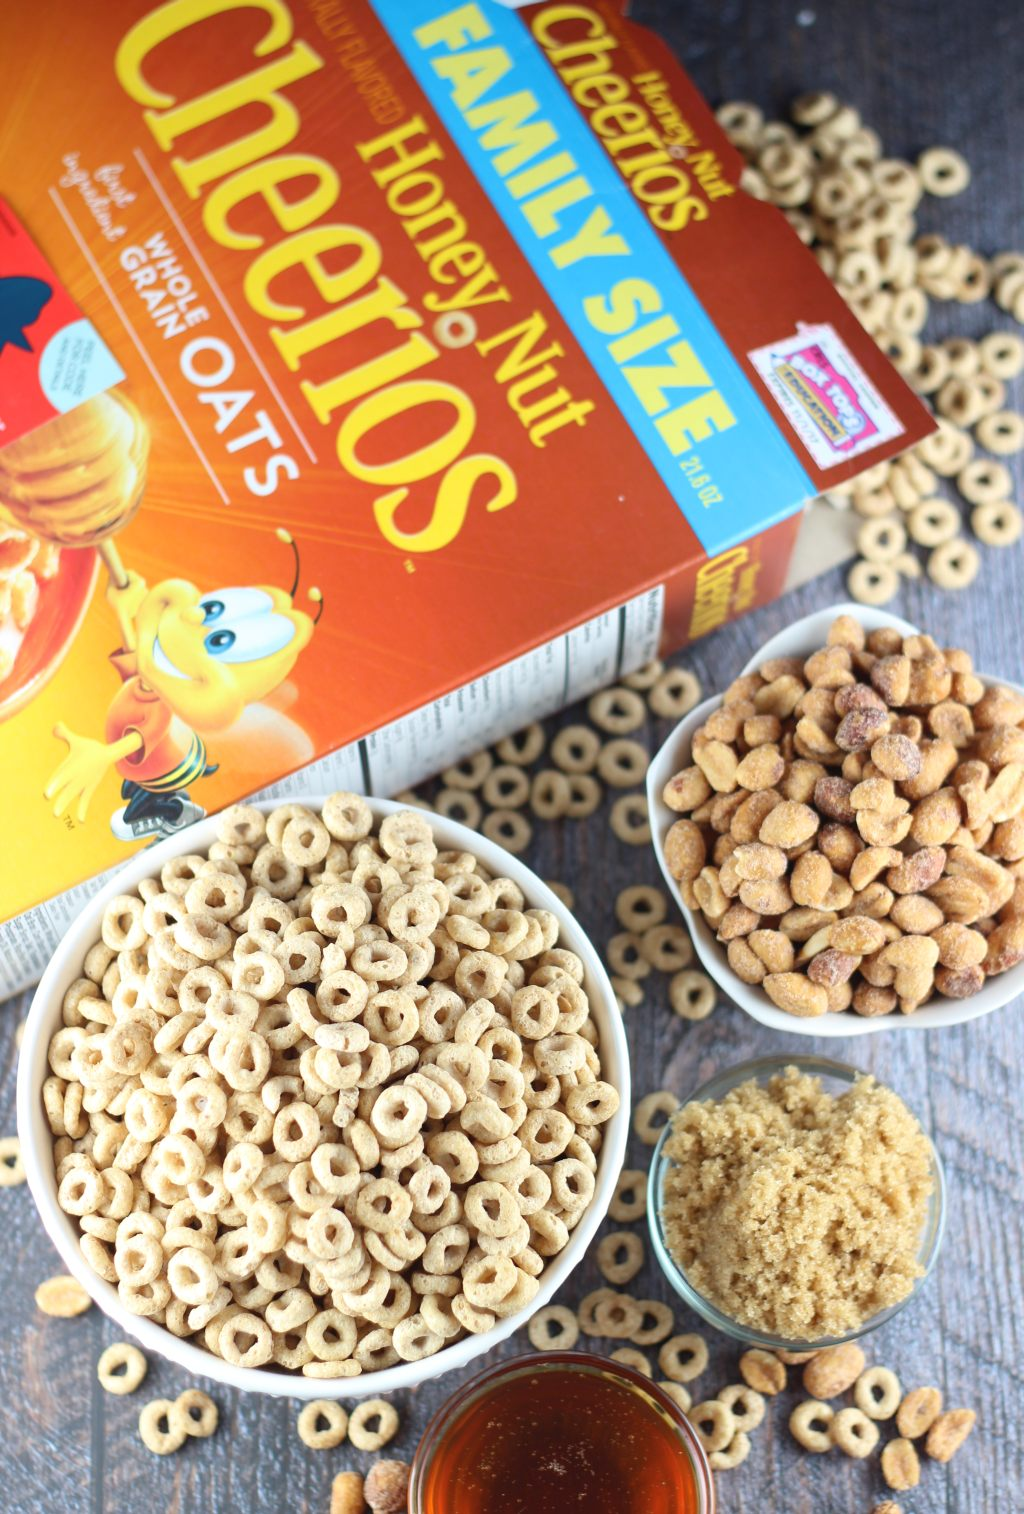 Honey Nut Cheerios™ Cereal Bars + Give A Box Promotion